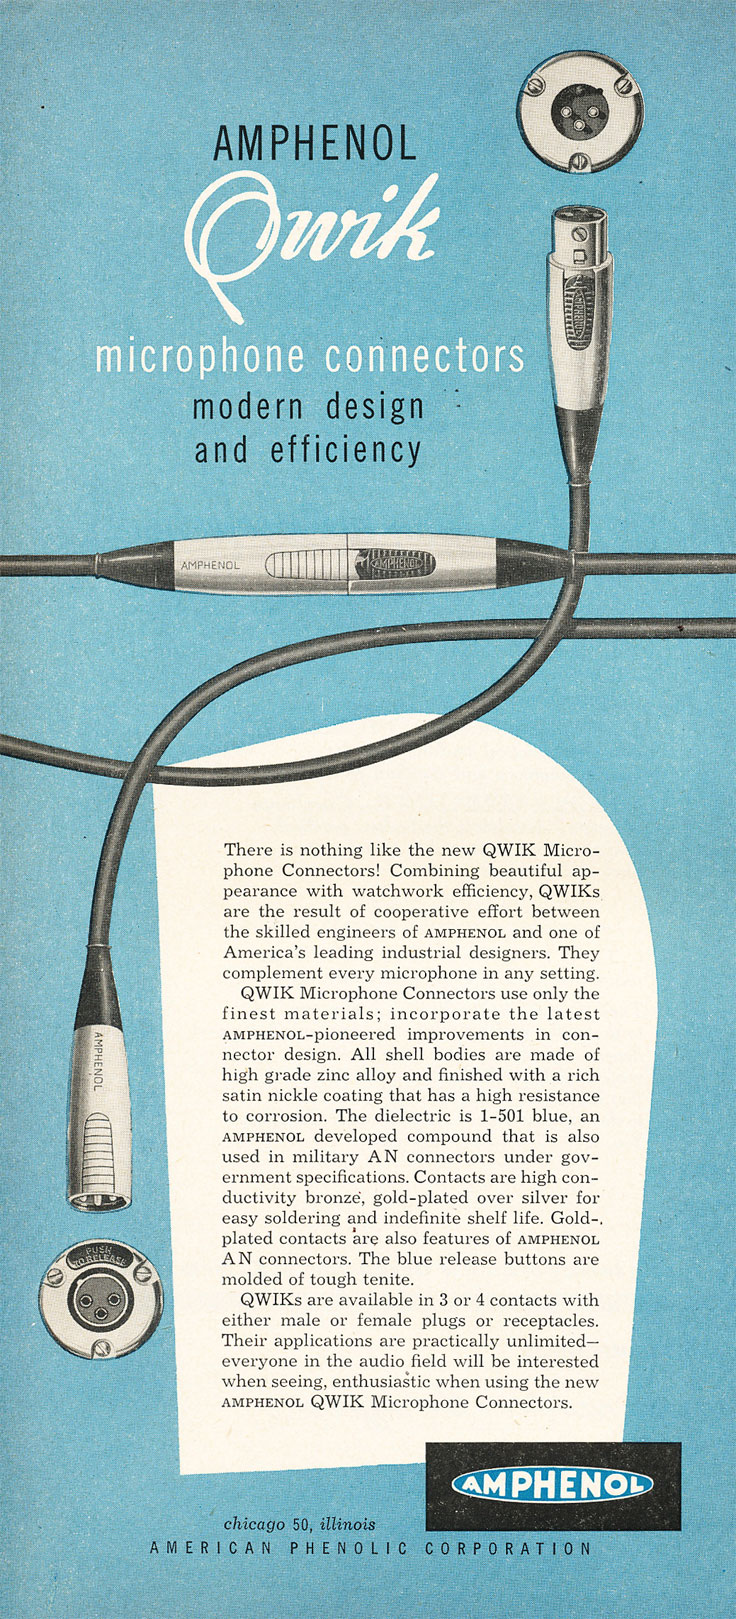 1954 Amphenol ad in Reel2ReelTexas.com's vintage recording collection